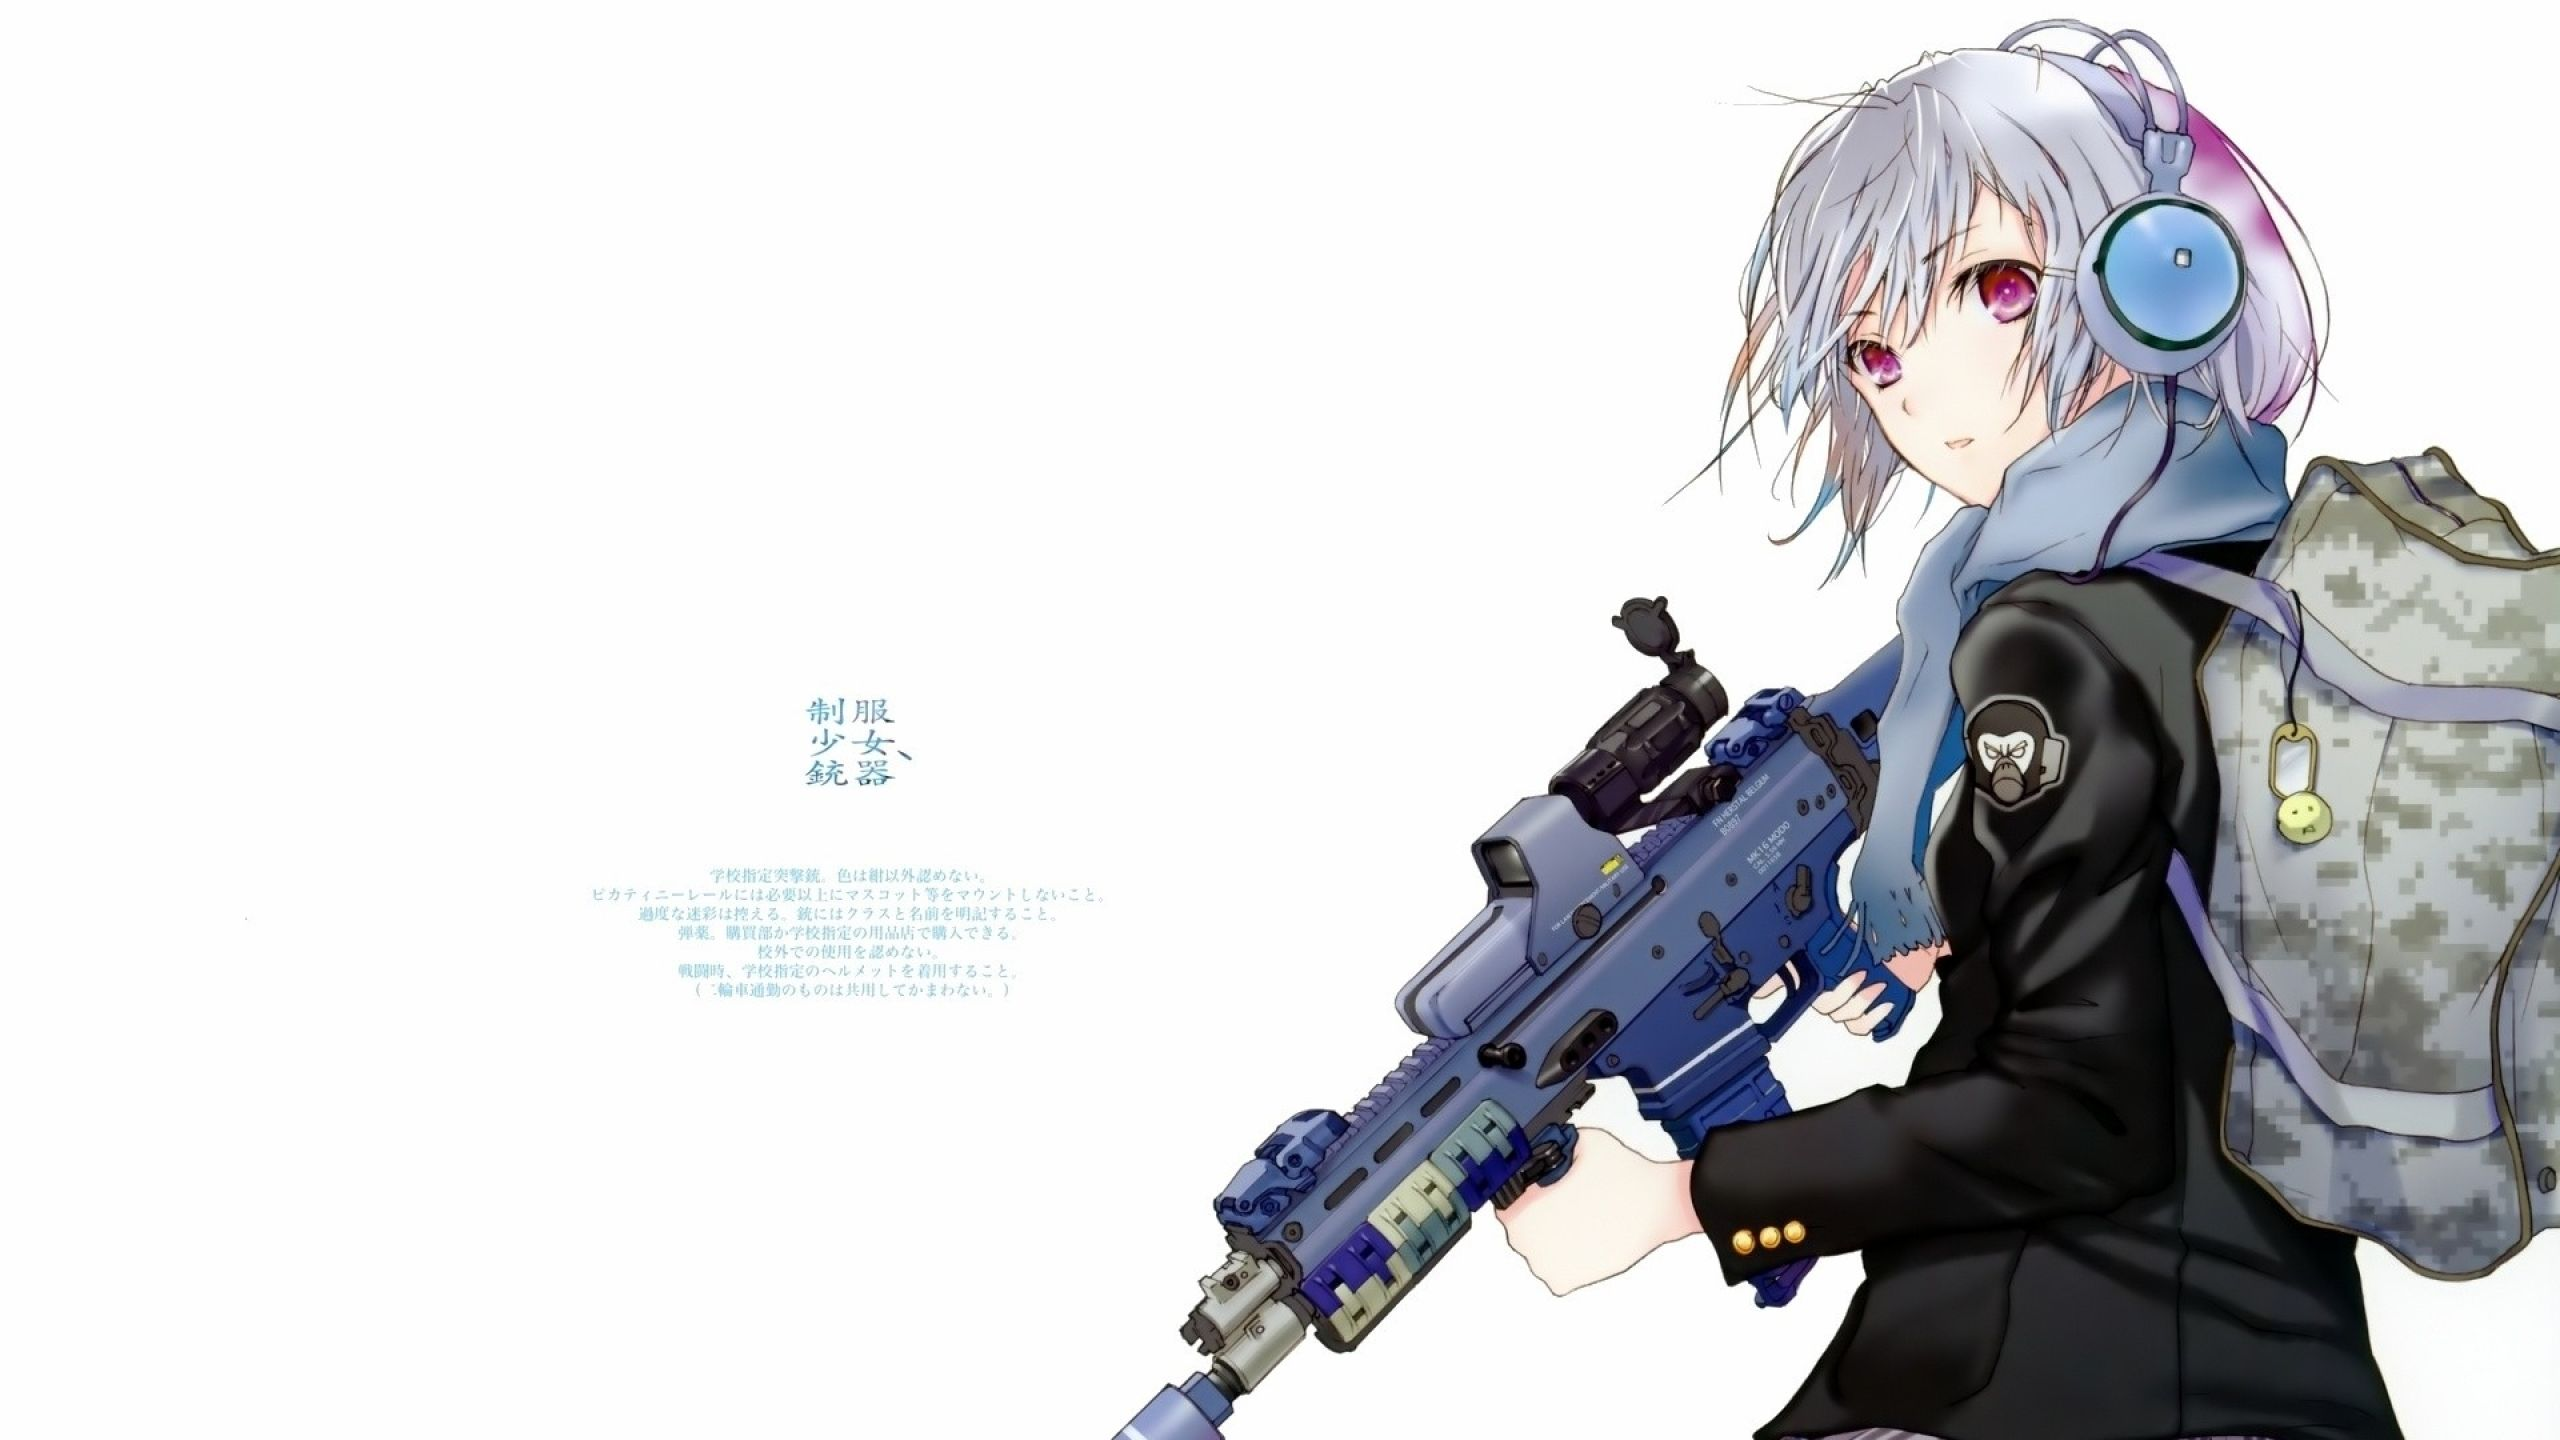 Anime To Draw, Anime Weapons, Wallpaper Downloads, Wallpaper Wallpapers, Black